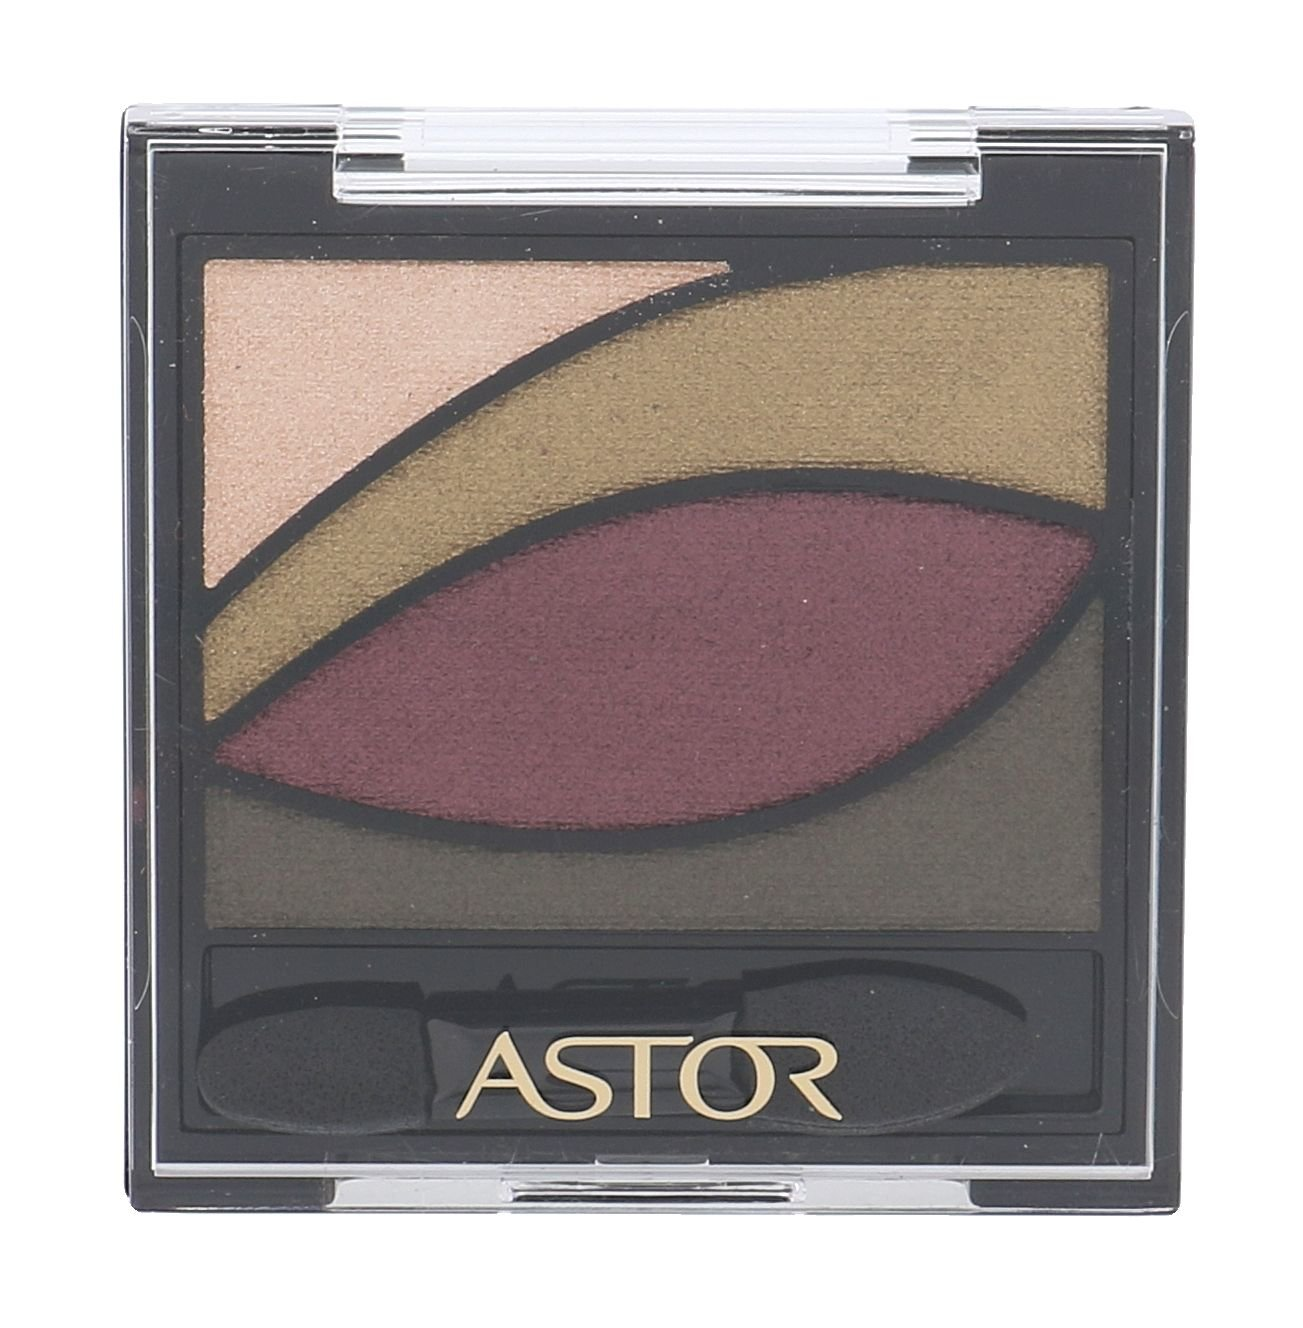 ASTOR Eye Artist Cosmetic 4ml 320 Shopping Guerilla